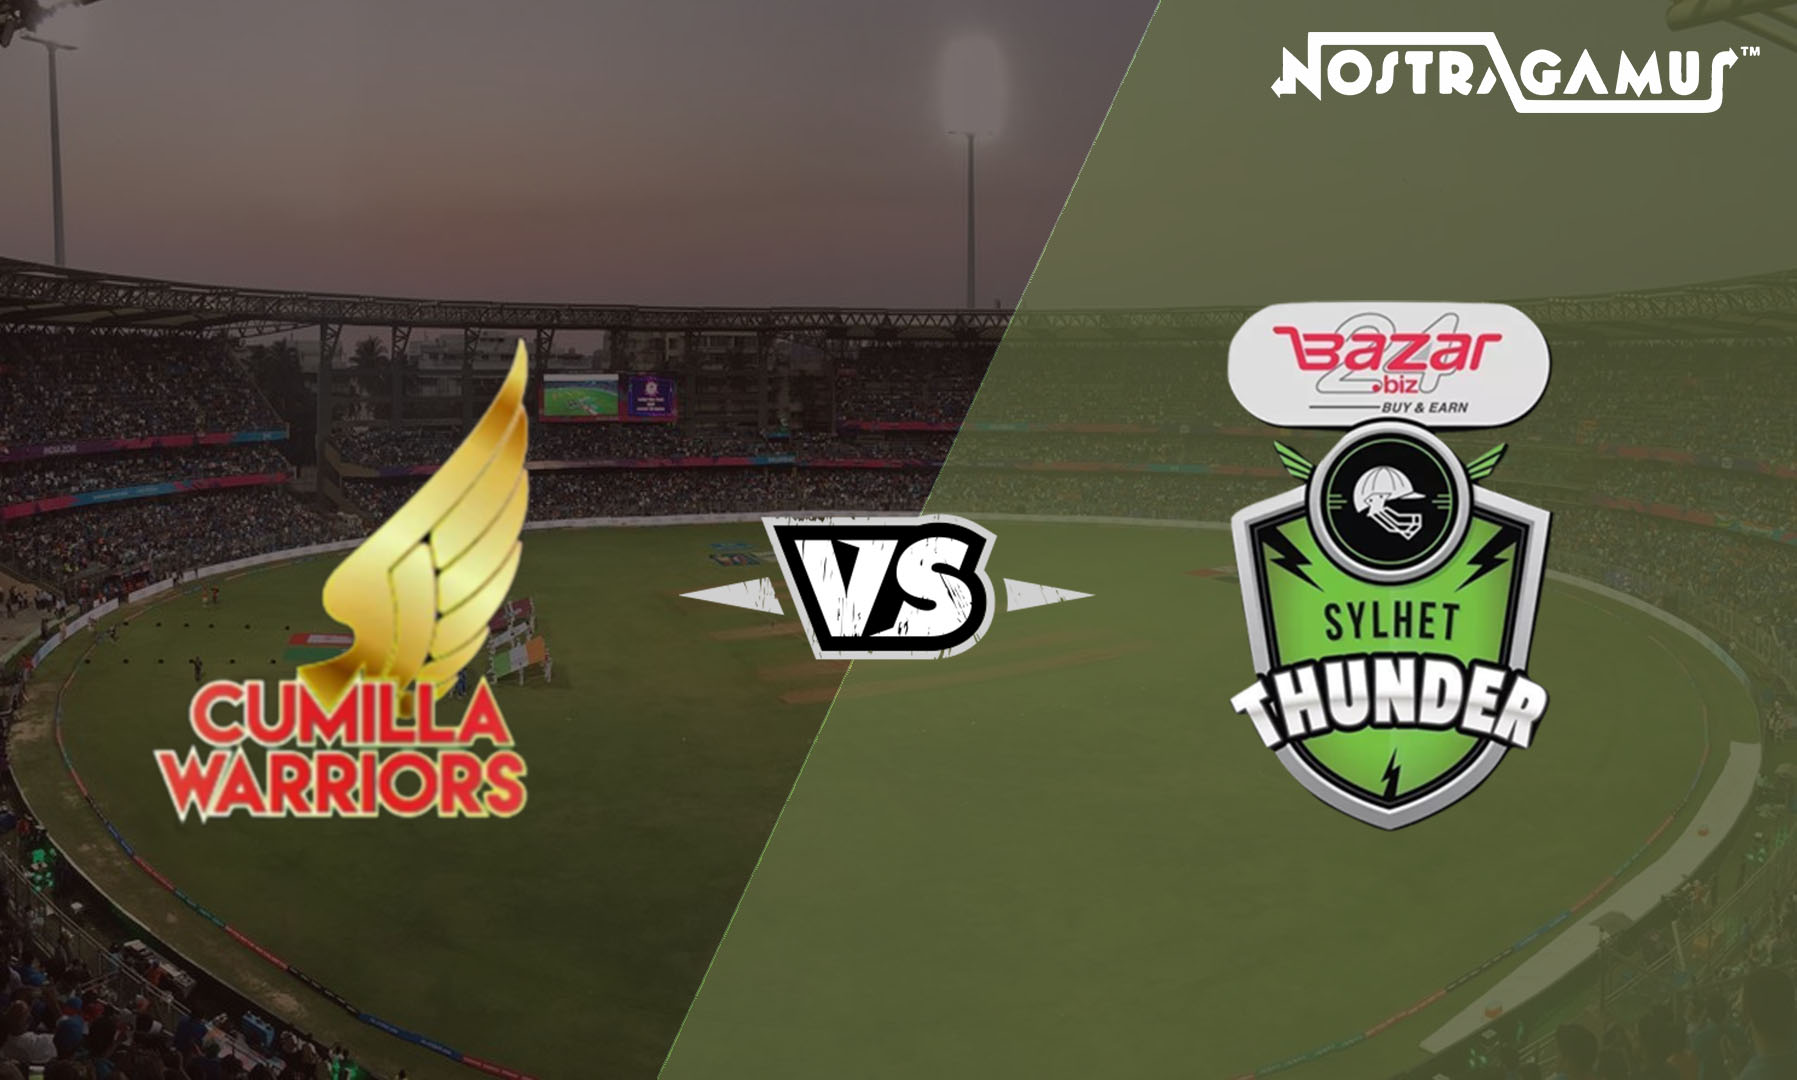 Sylhet Thunder vs Cumilla Warriors: BPL 2019 Match Prediction